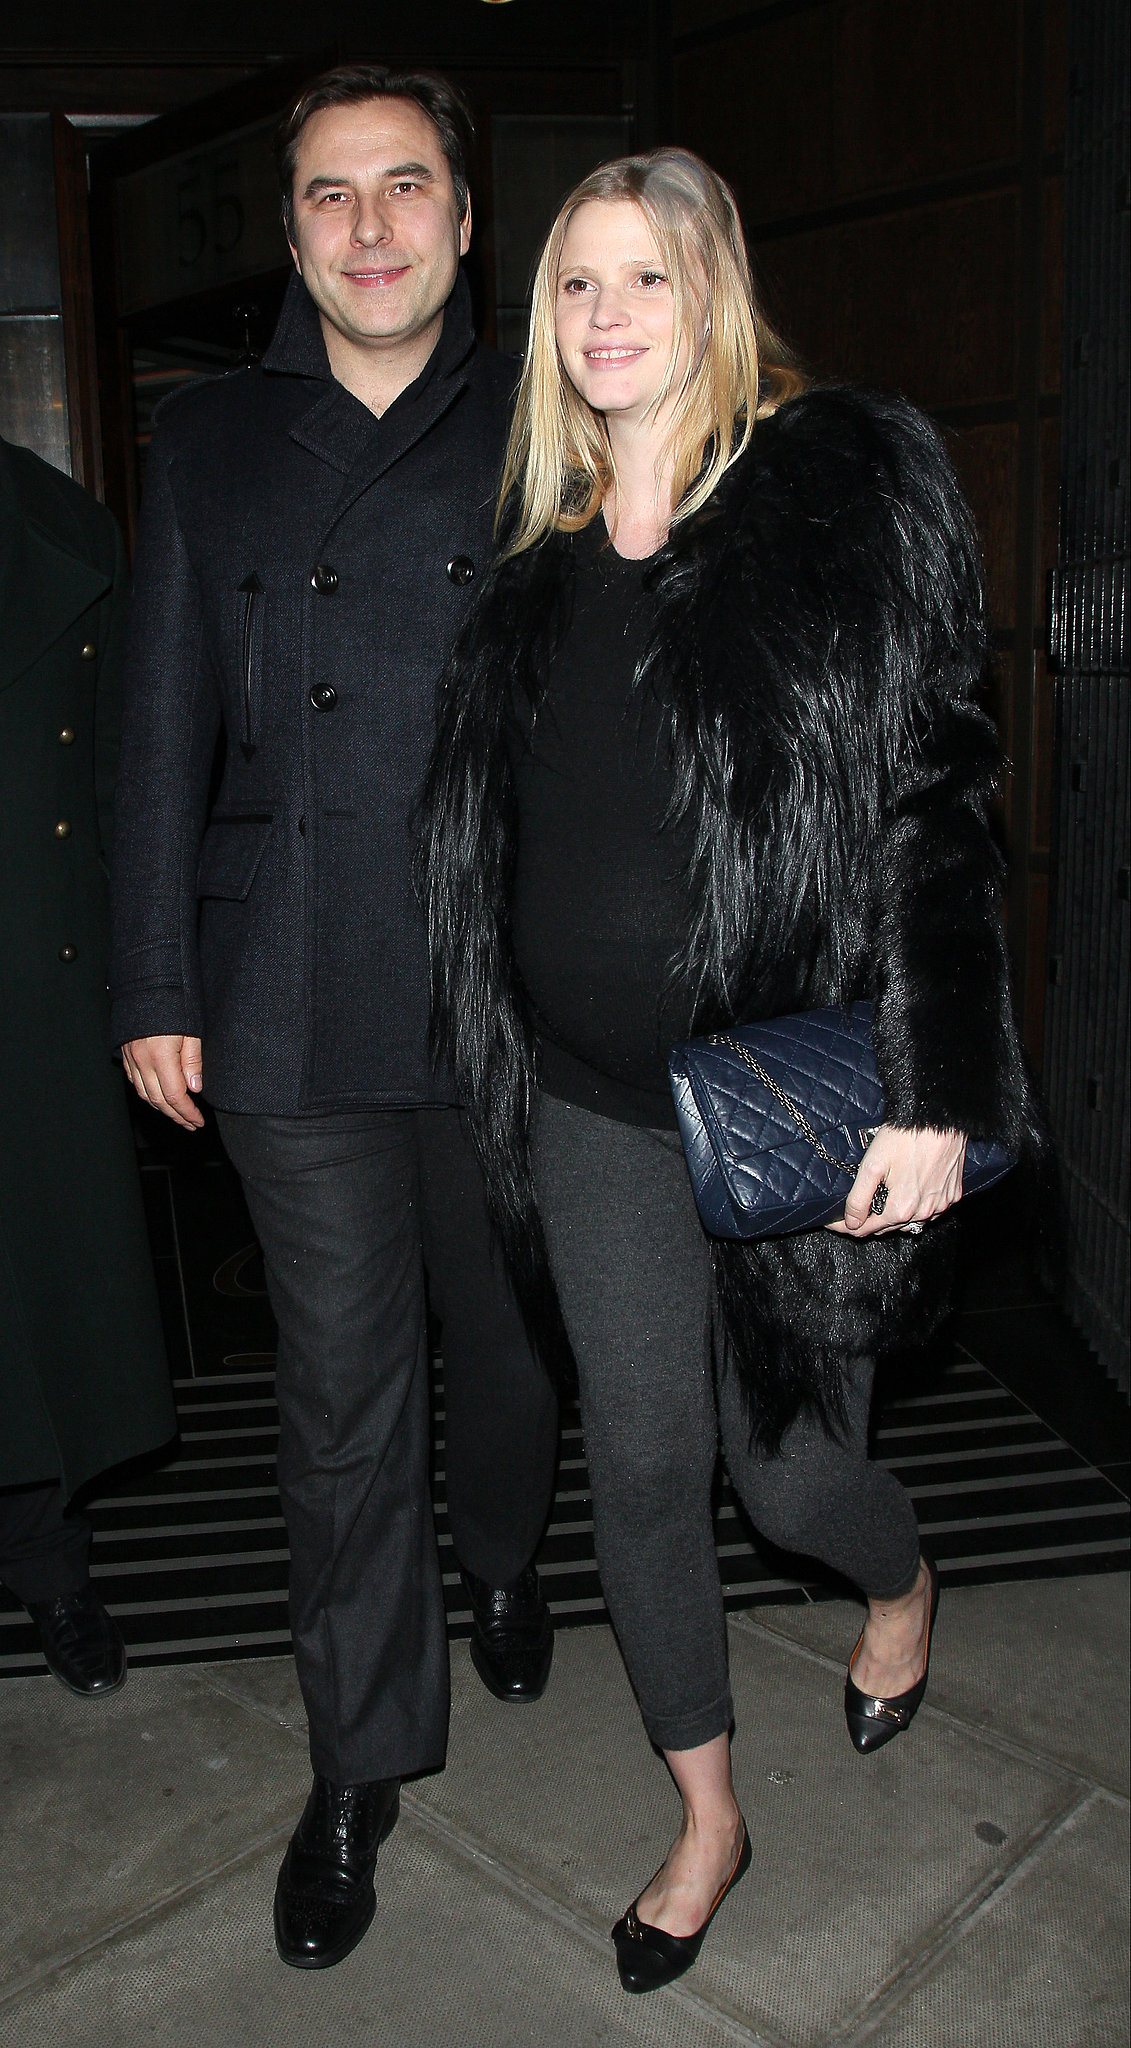 For date night with her husband david walliams in london a pregnant